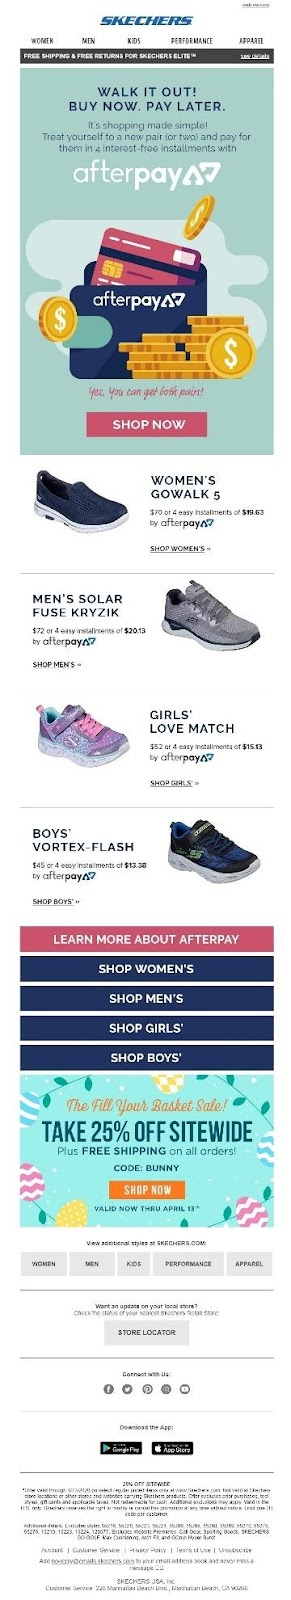 Skechers | example of great subject line and preheader text